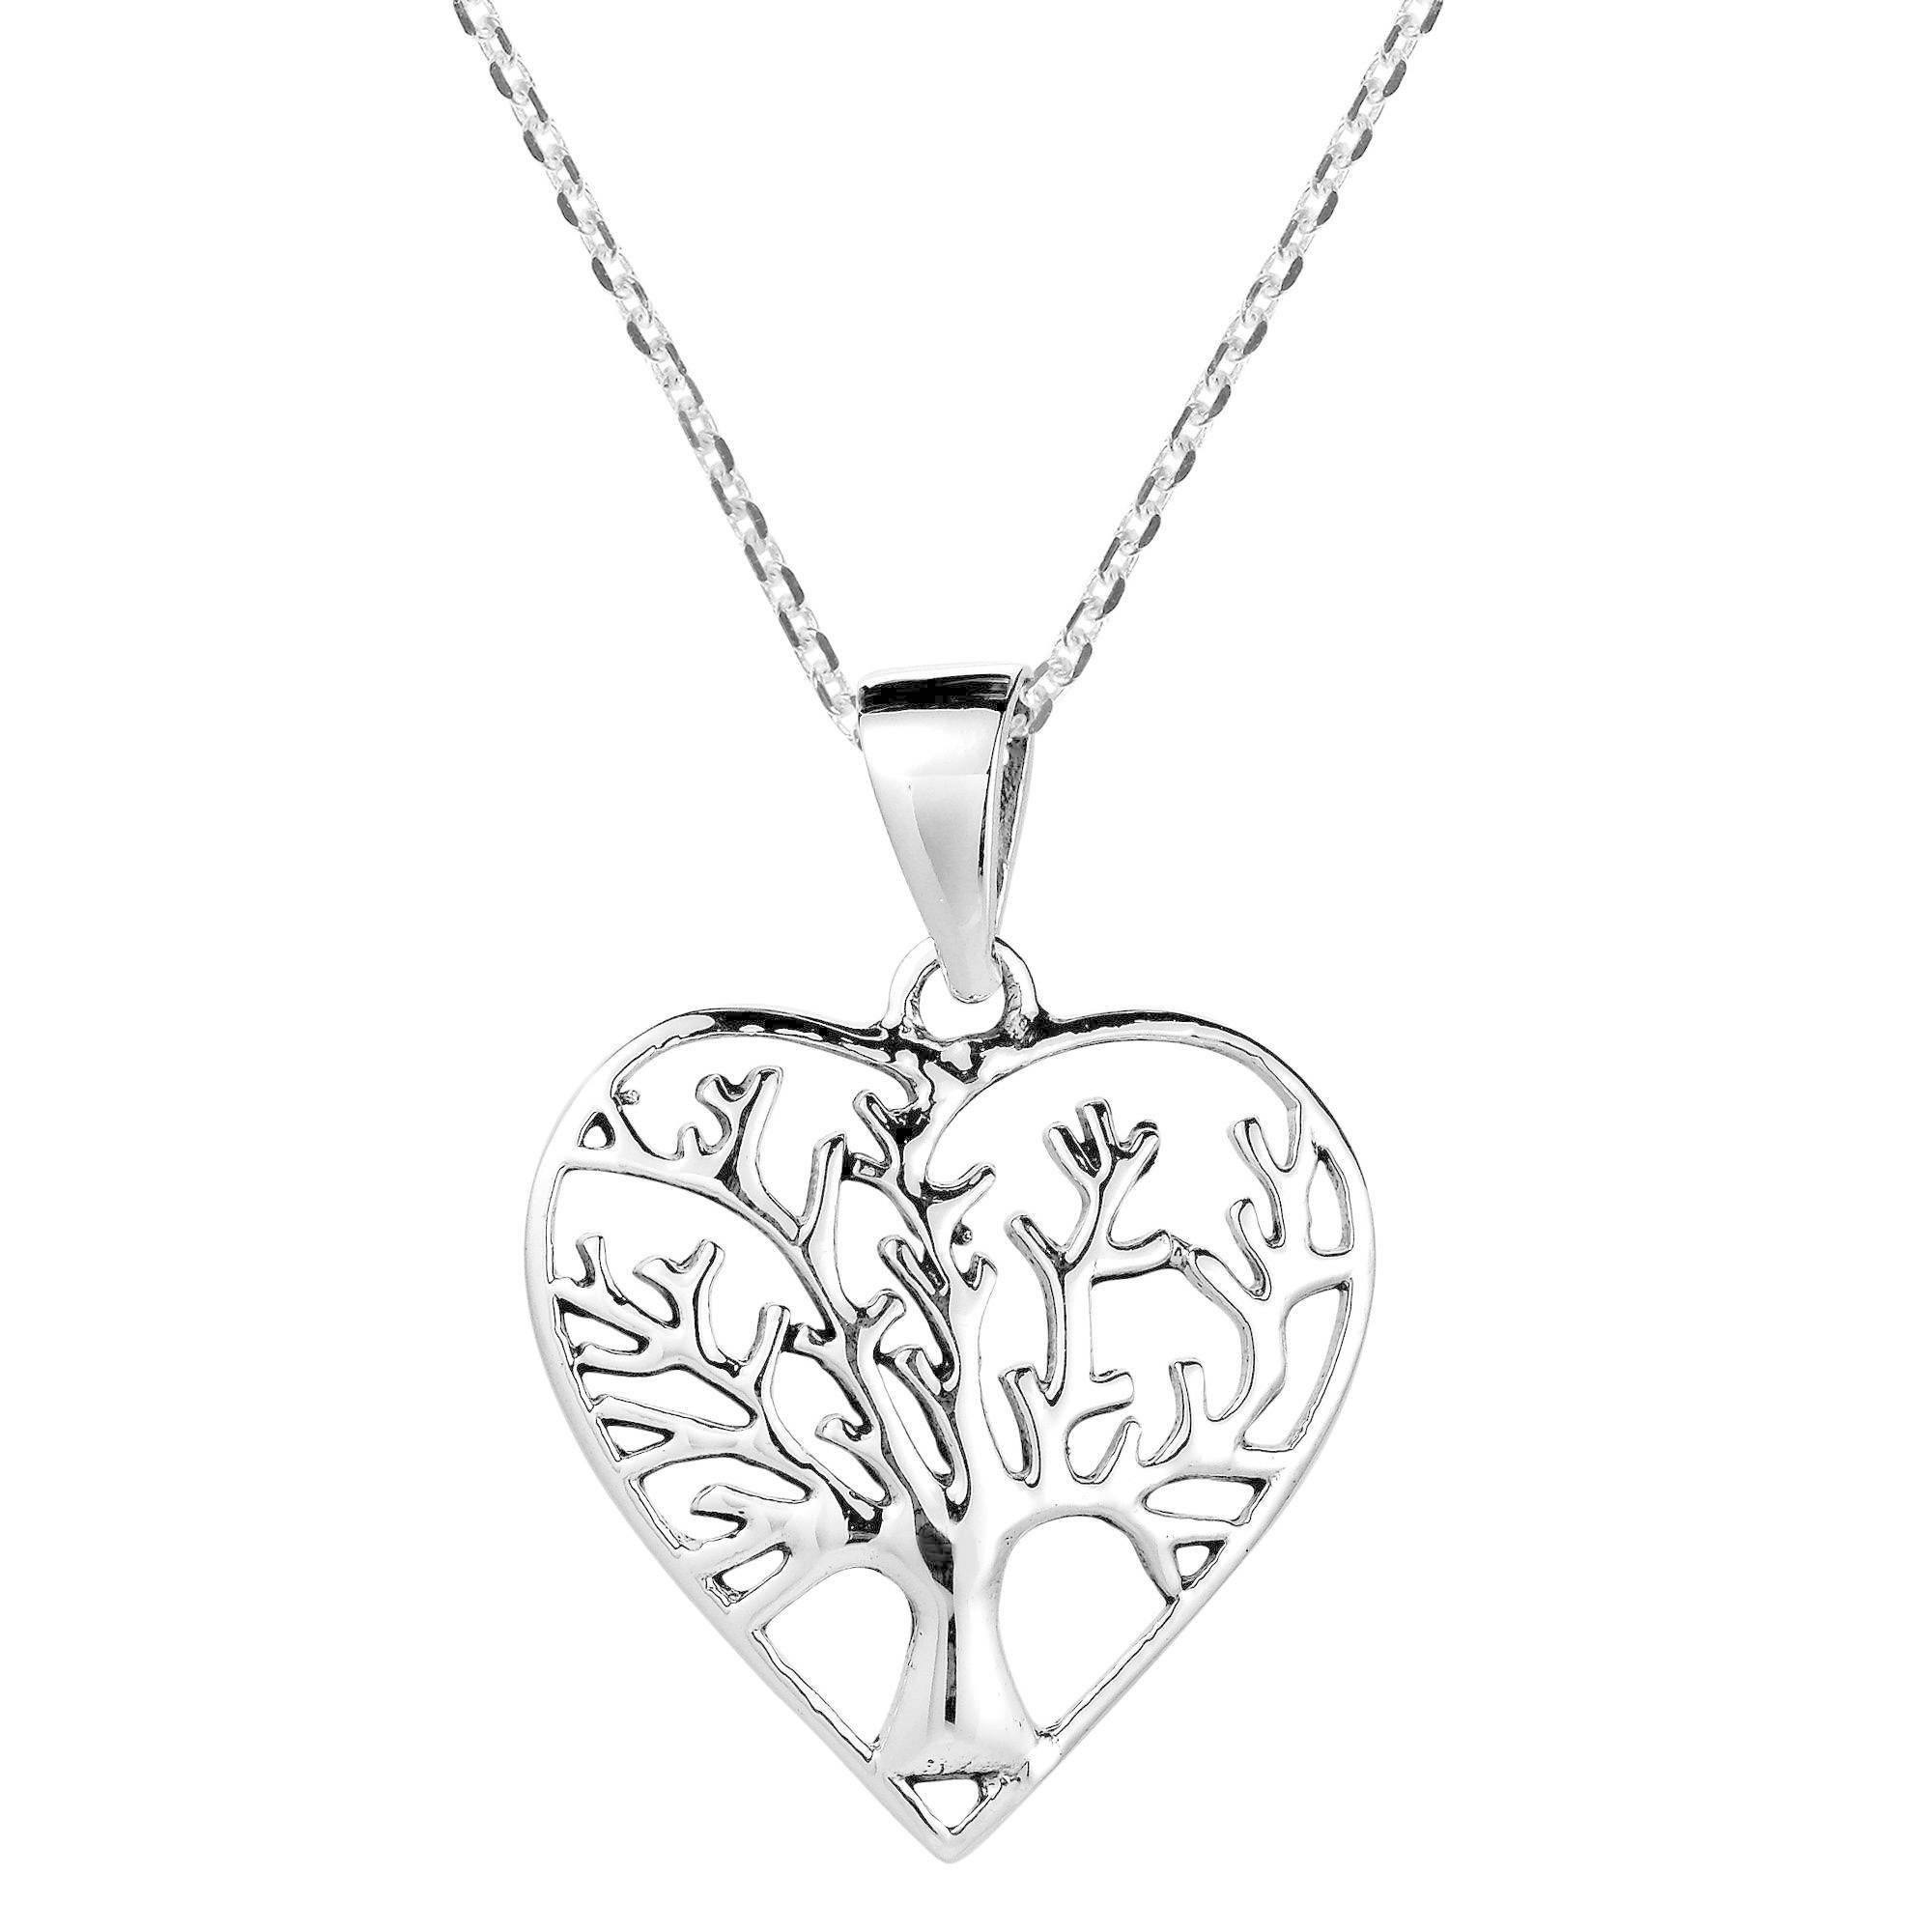 892fdf28f34b Handmade Heart Shape Tree of Life Sterling Silver Necklace (Thailand)